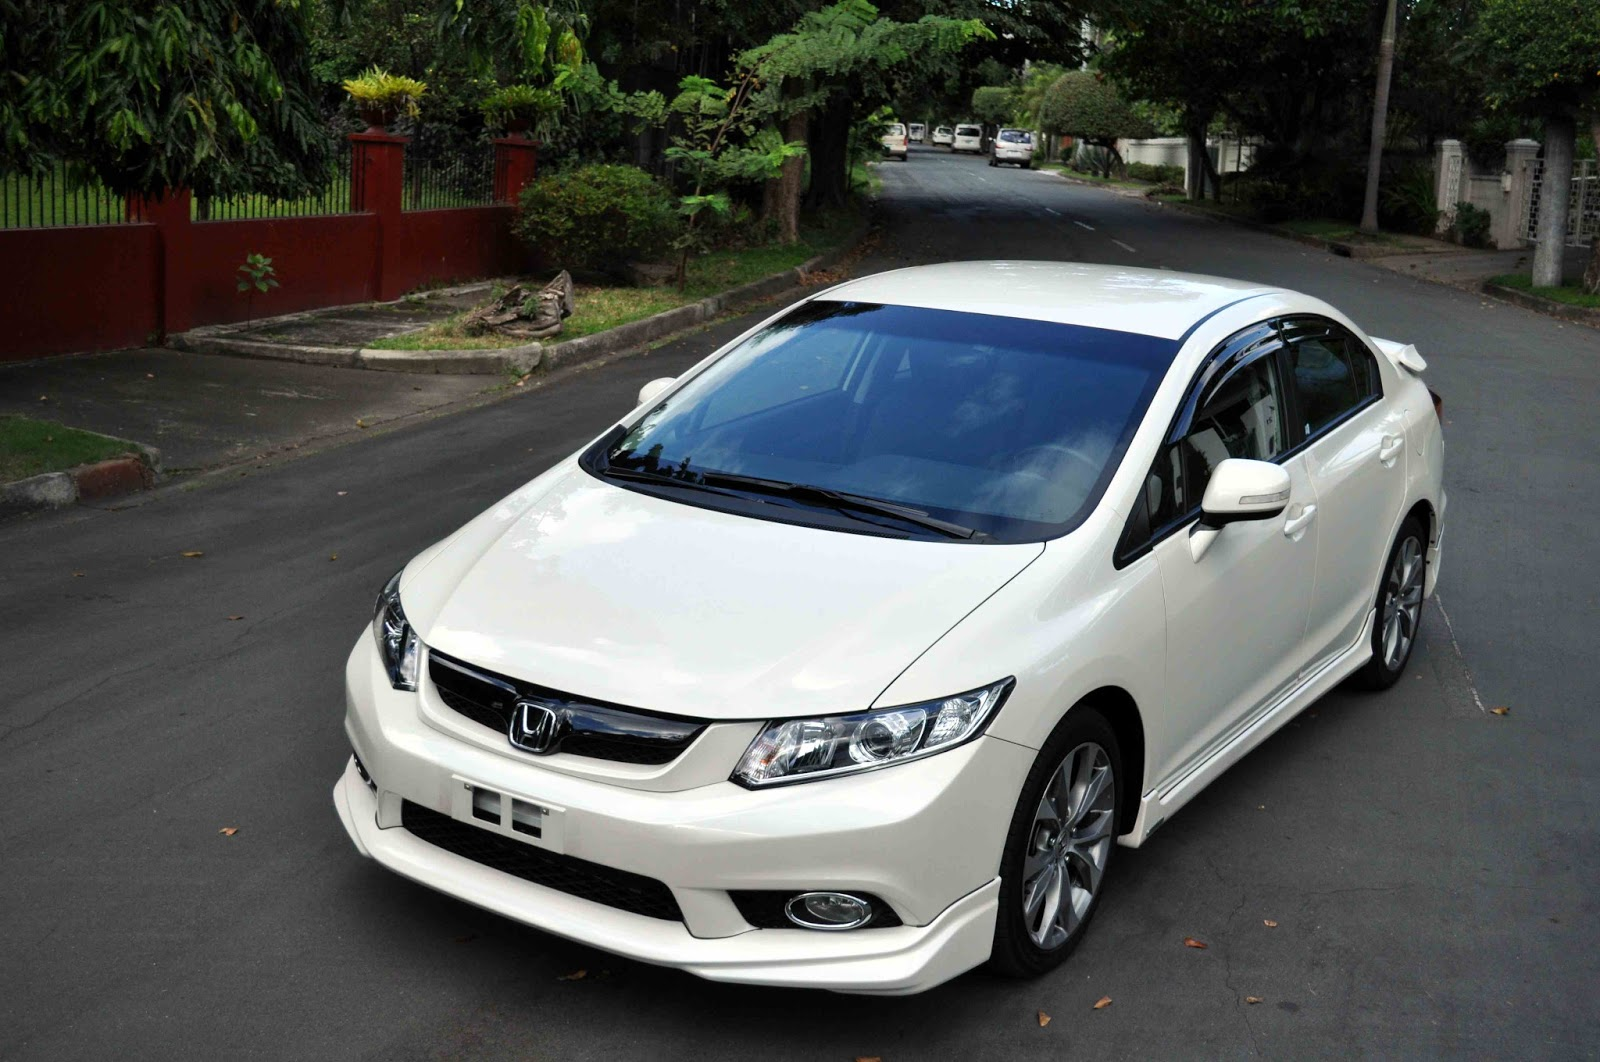 2013 civic si coupe hfp body kit autos post. Black Bedroom Furniture Sets. Home Design Ideas